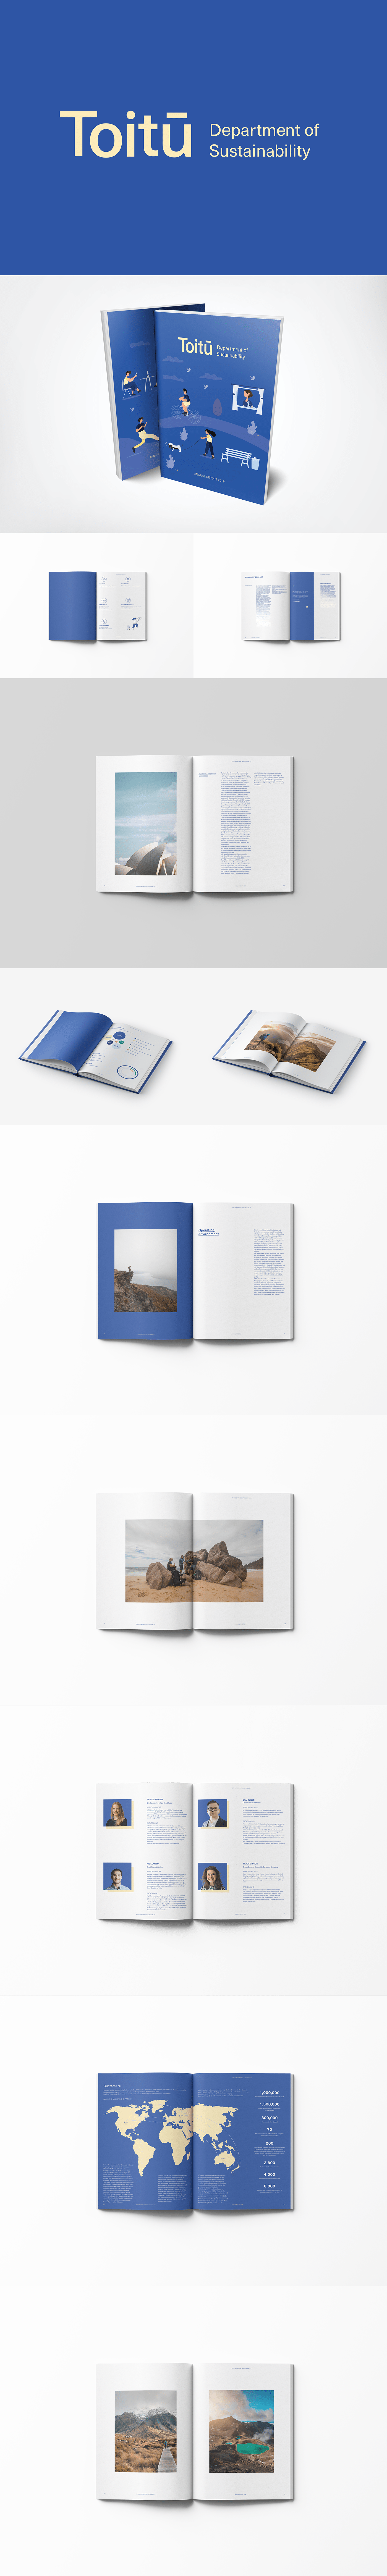 annual report conservation Data graphic design  logo New Zealand Photography  publication Sustainability Sustainable